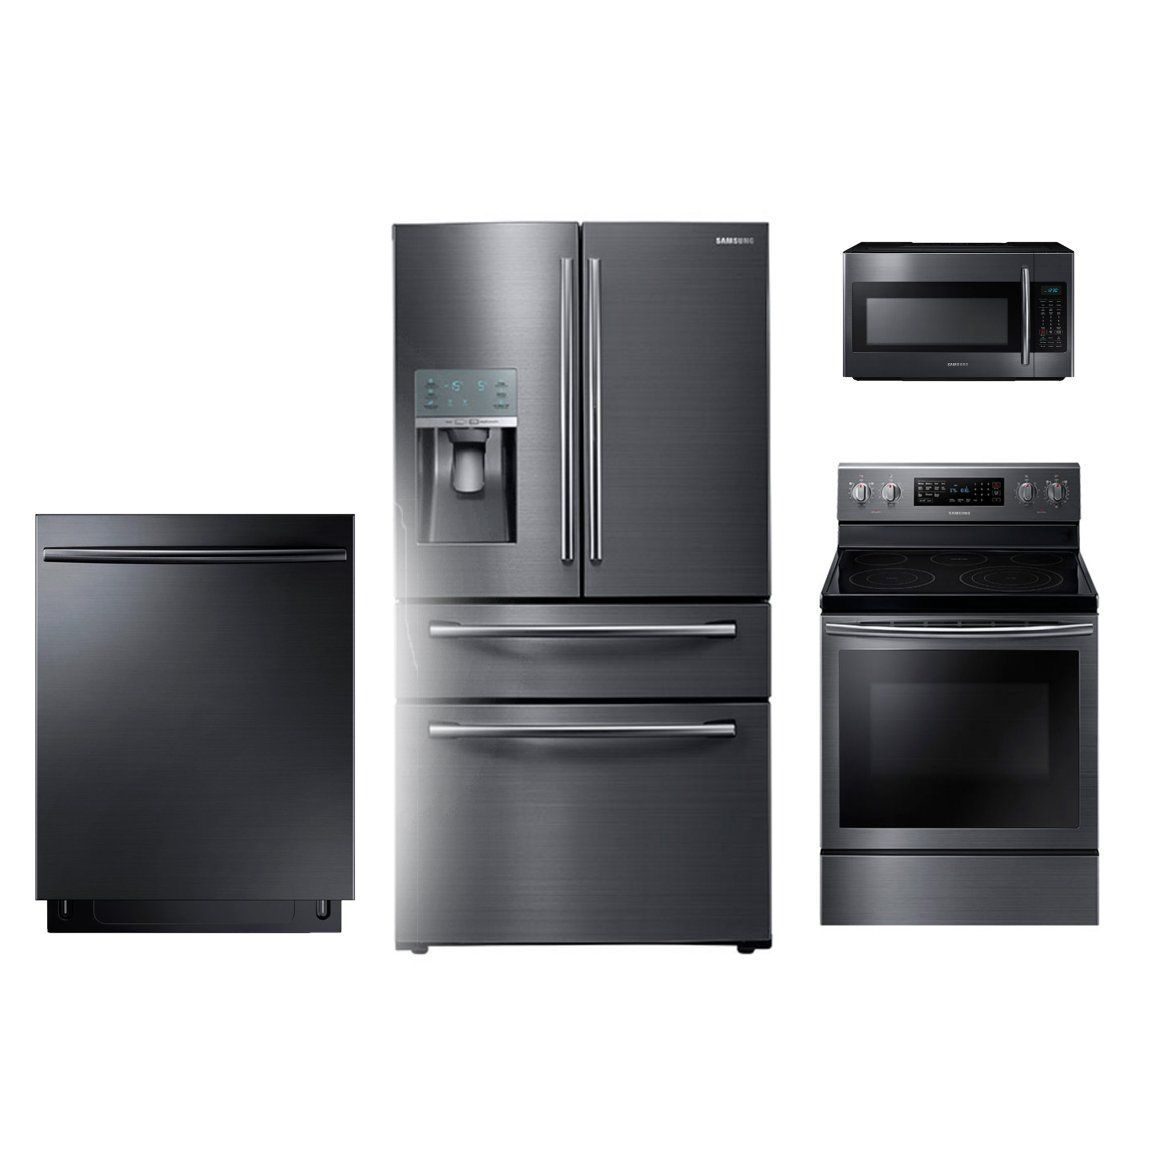 Samsung 4 Piece Electric Kitchen Appliance Package With 28 Cu Ft Refrigerator Black Stainless Steel Appliance Black In 2020 Samsung Kitchen Appliances